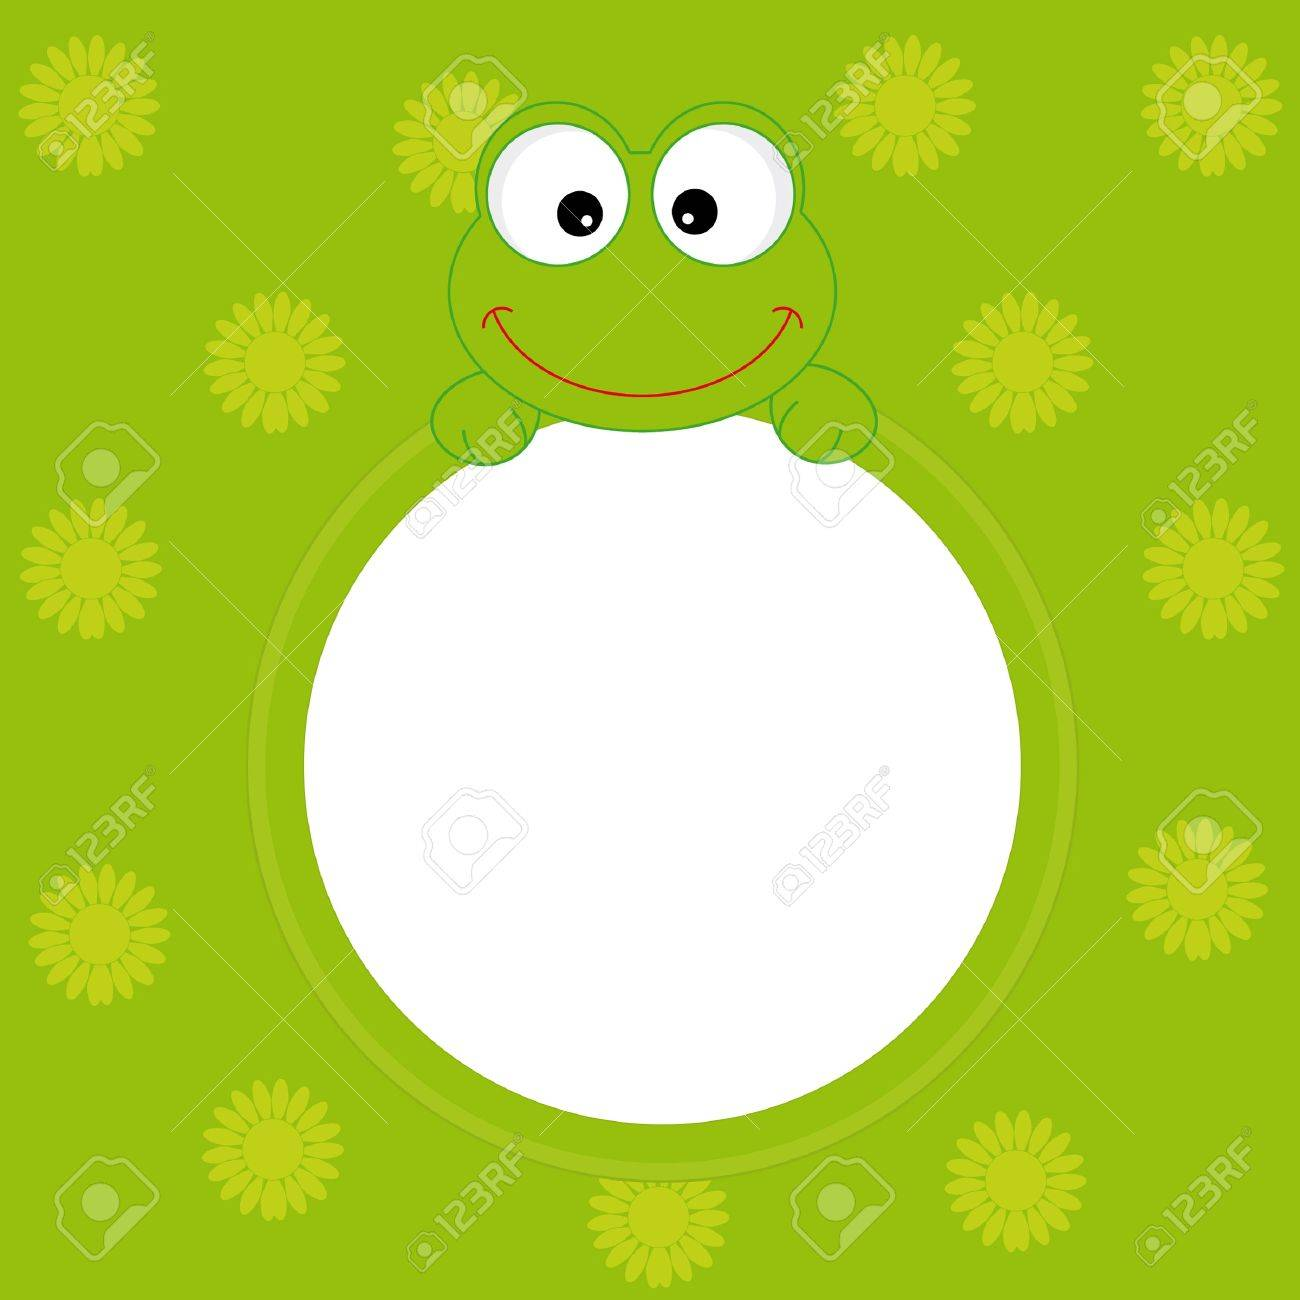 Greeting Card. Frog Frame Royalty Free Cliparts, Vectors, And Stock ...